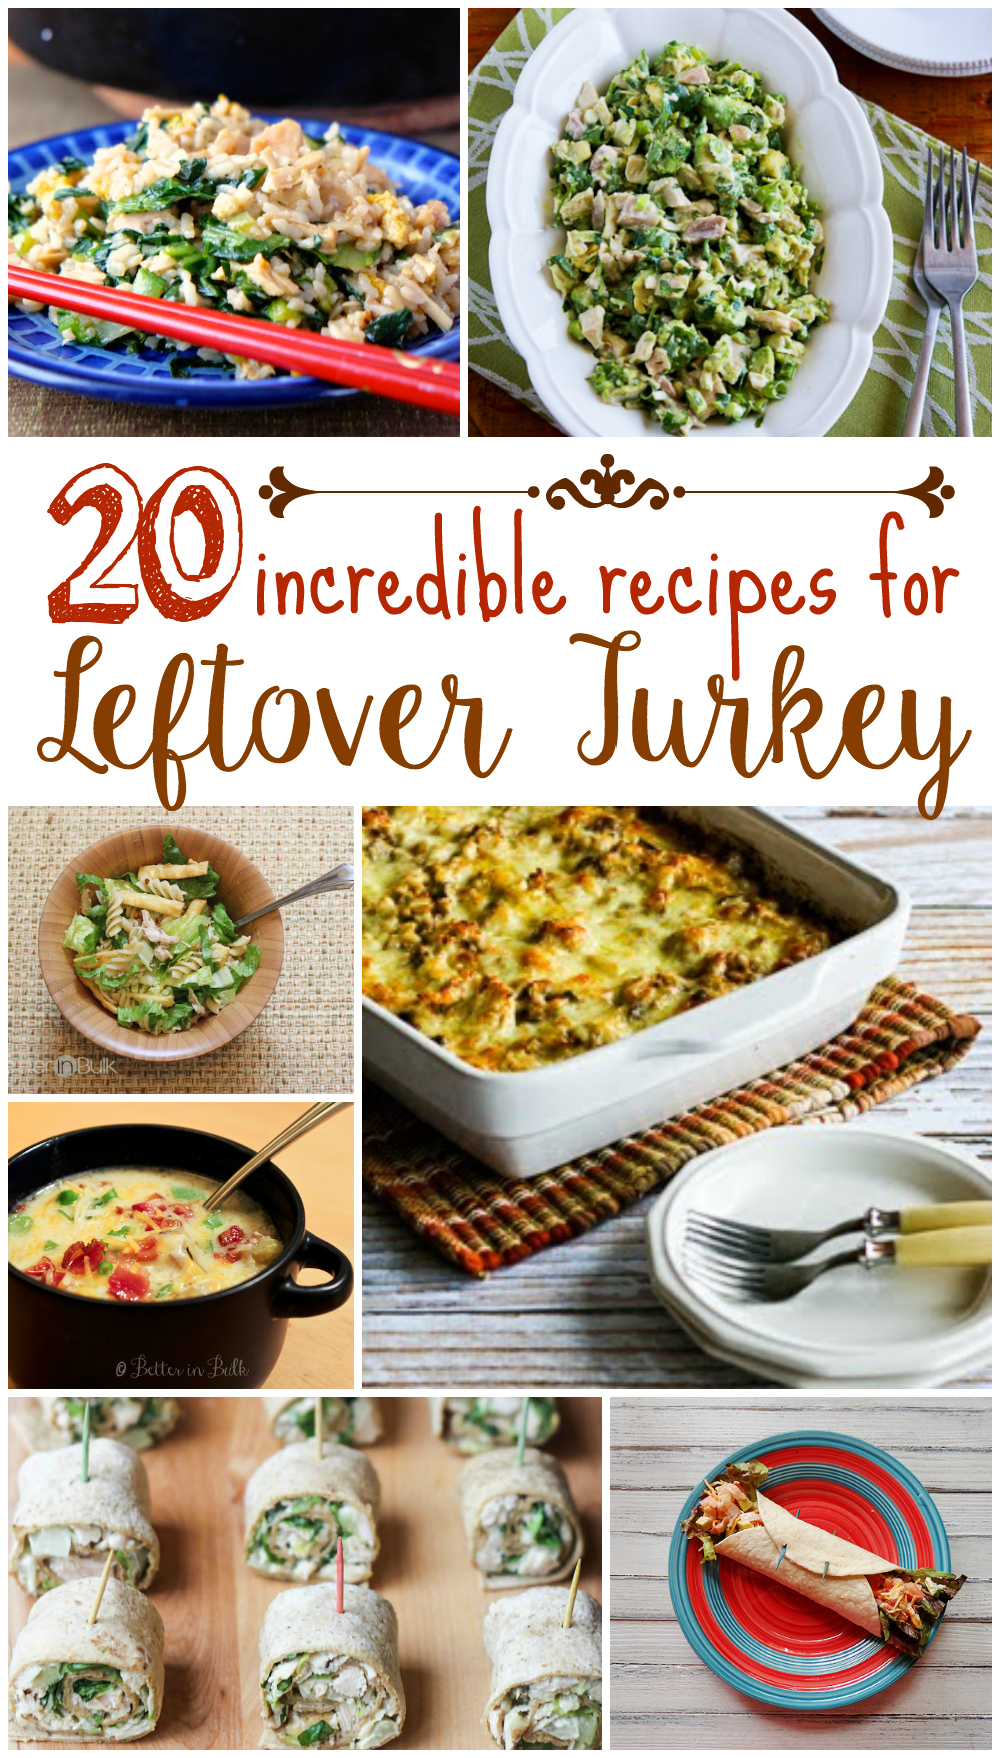 20 Incredible Recipes for Leftover Turkey